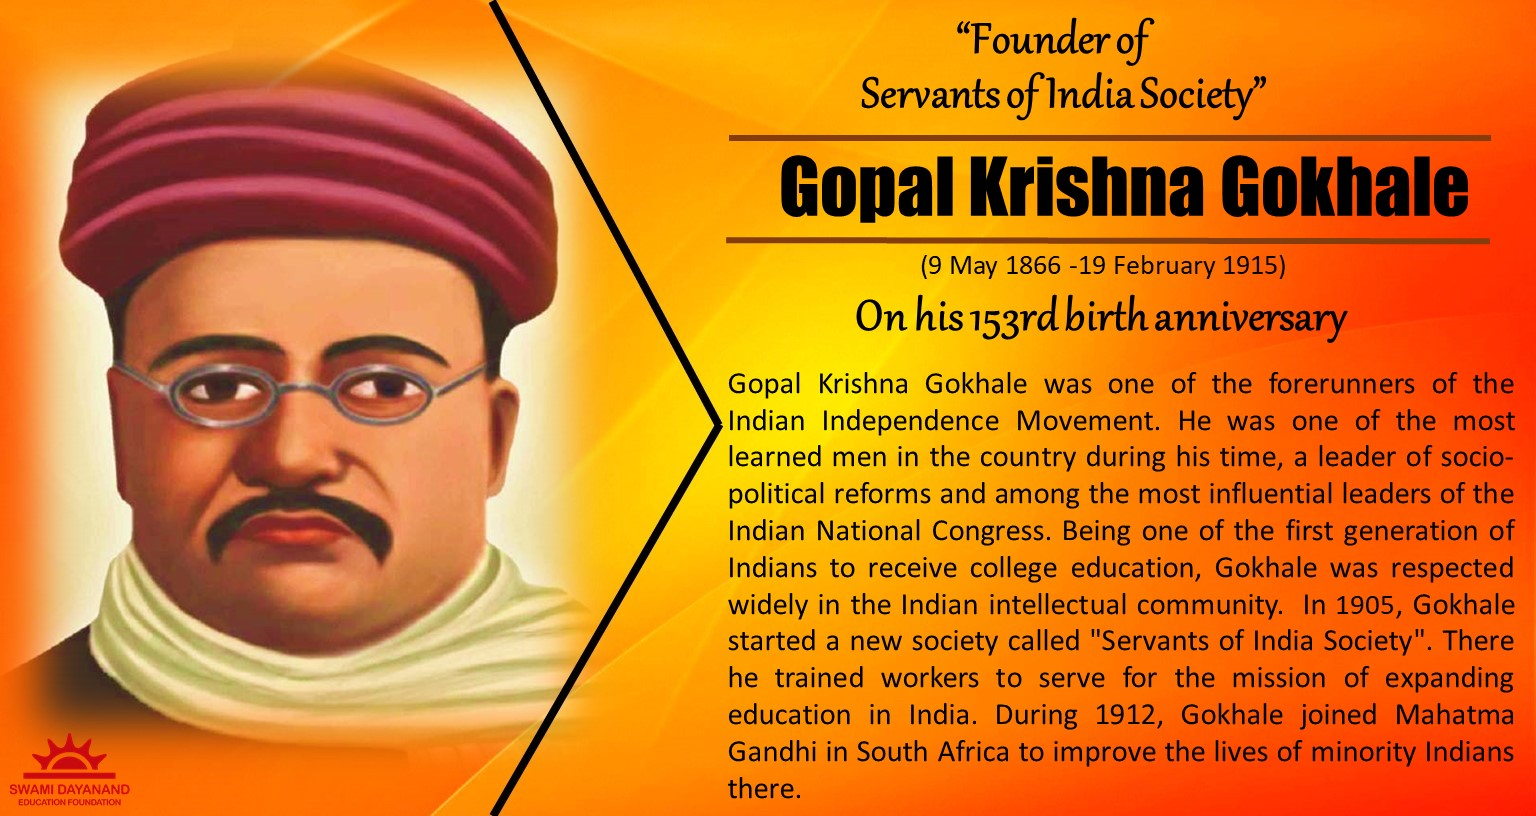 GOPAL KRISHNA GOKHALE  (9th May 1866 - 19th Feb 1915)